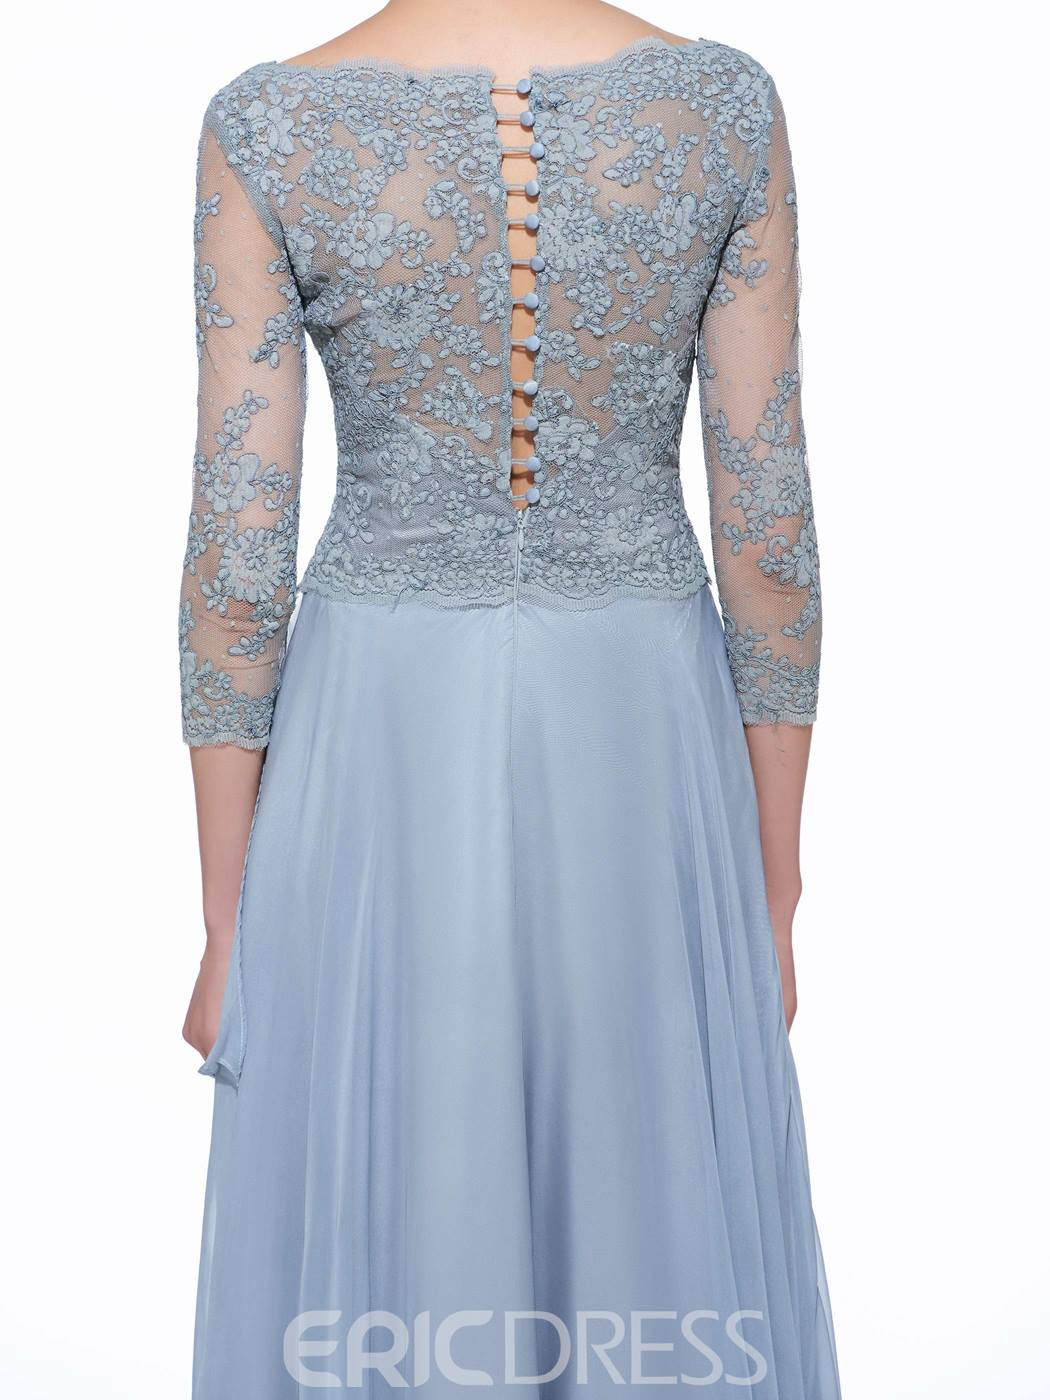 Ericdress Elegant V Neck 3/4 Length Sleeves Lace Long Mother Of The Bride Dress